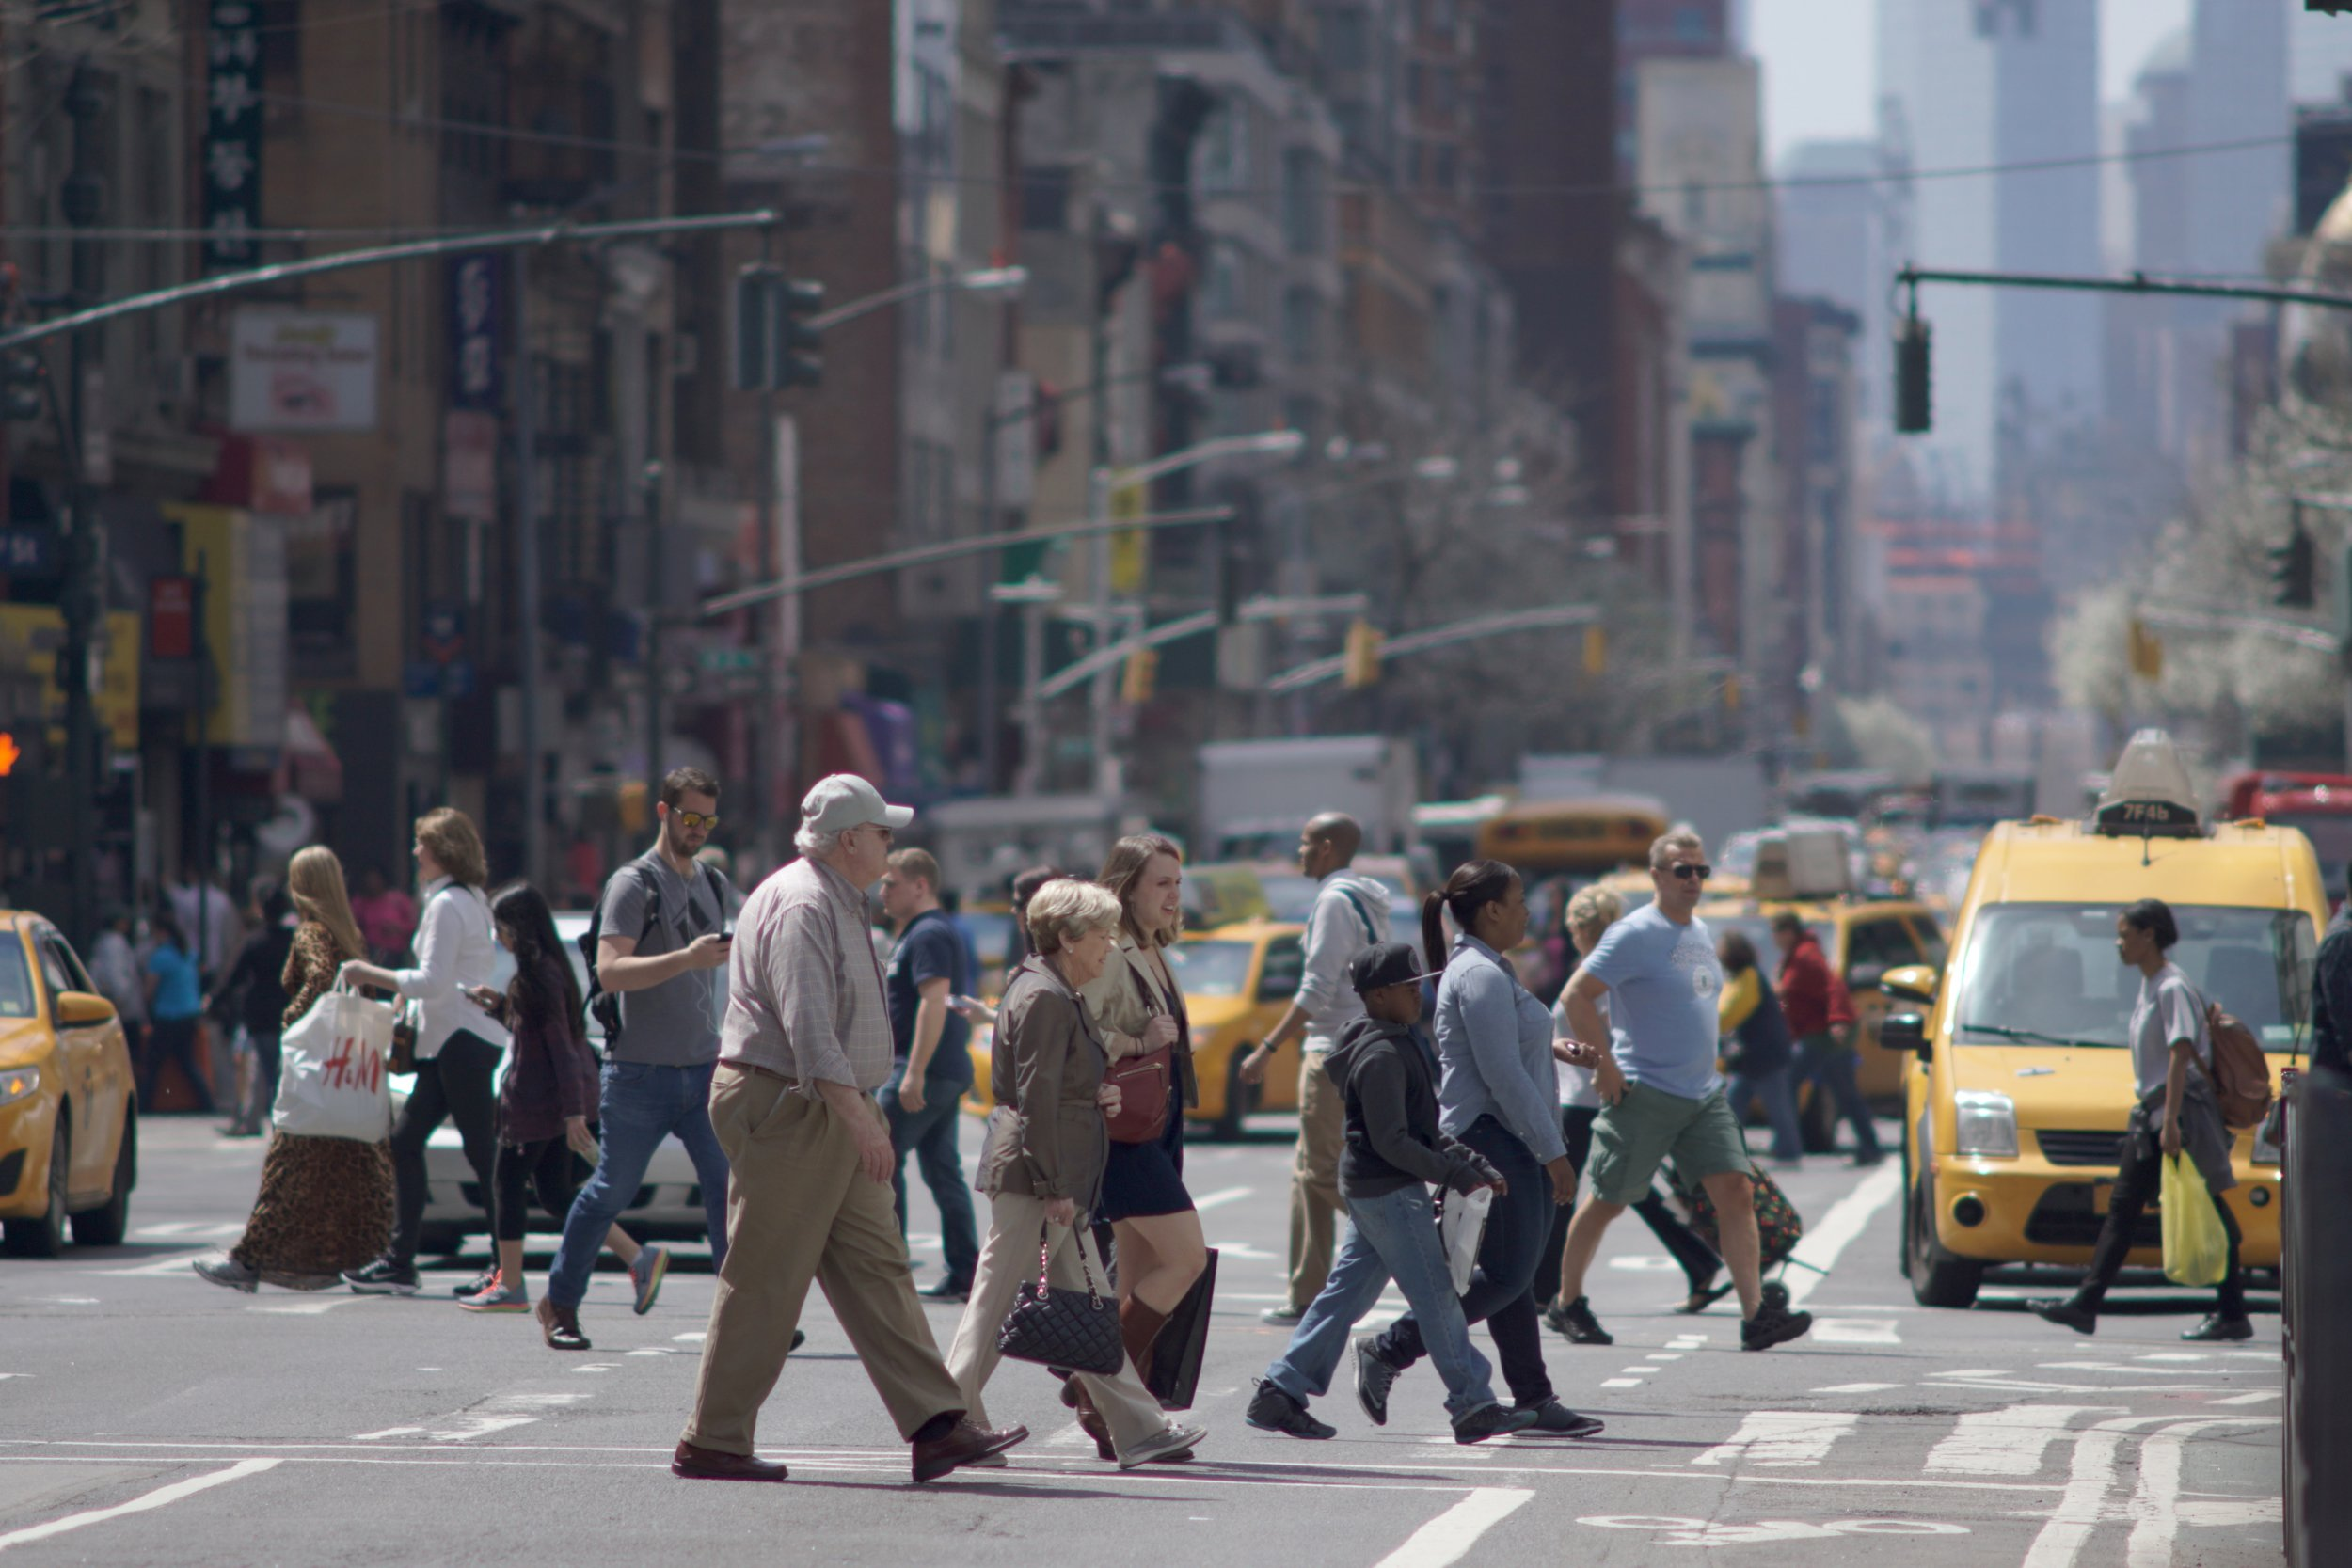 Street Photography with A Telephoto Lens, pedestrians in crosswalk